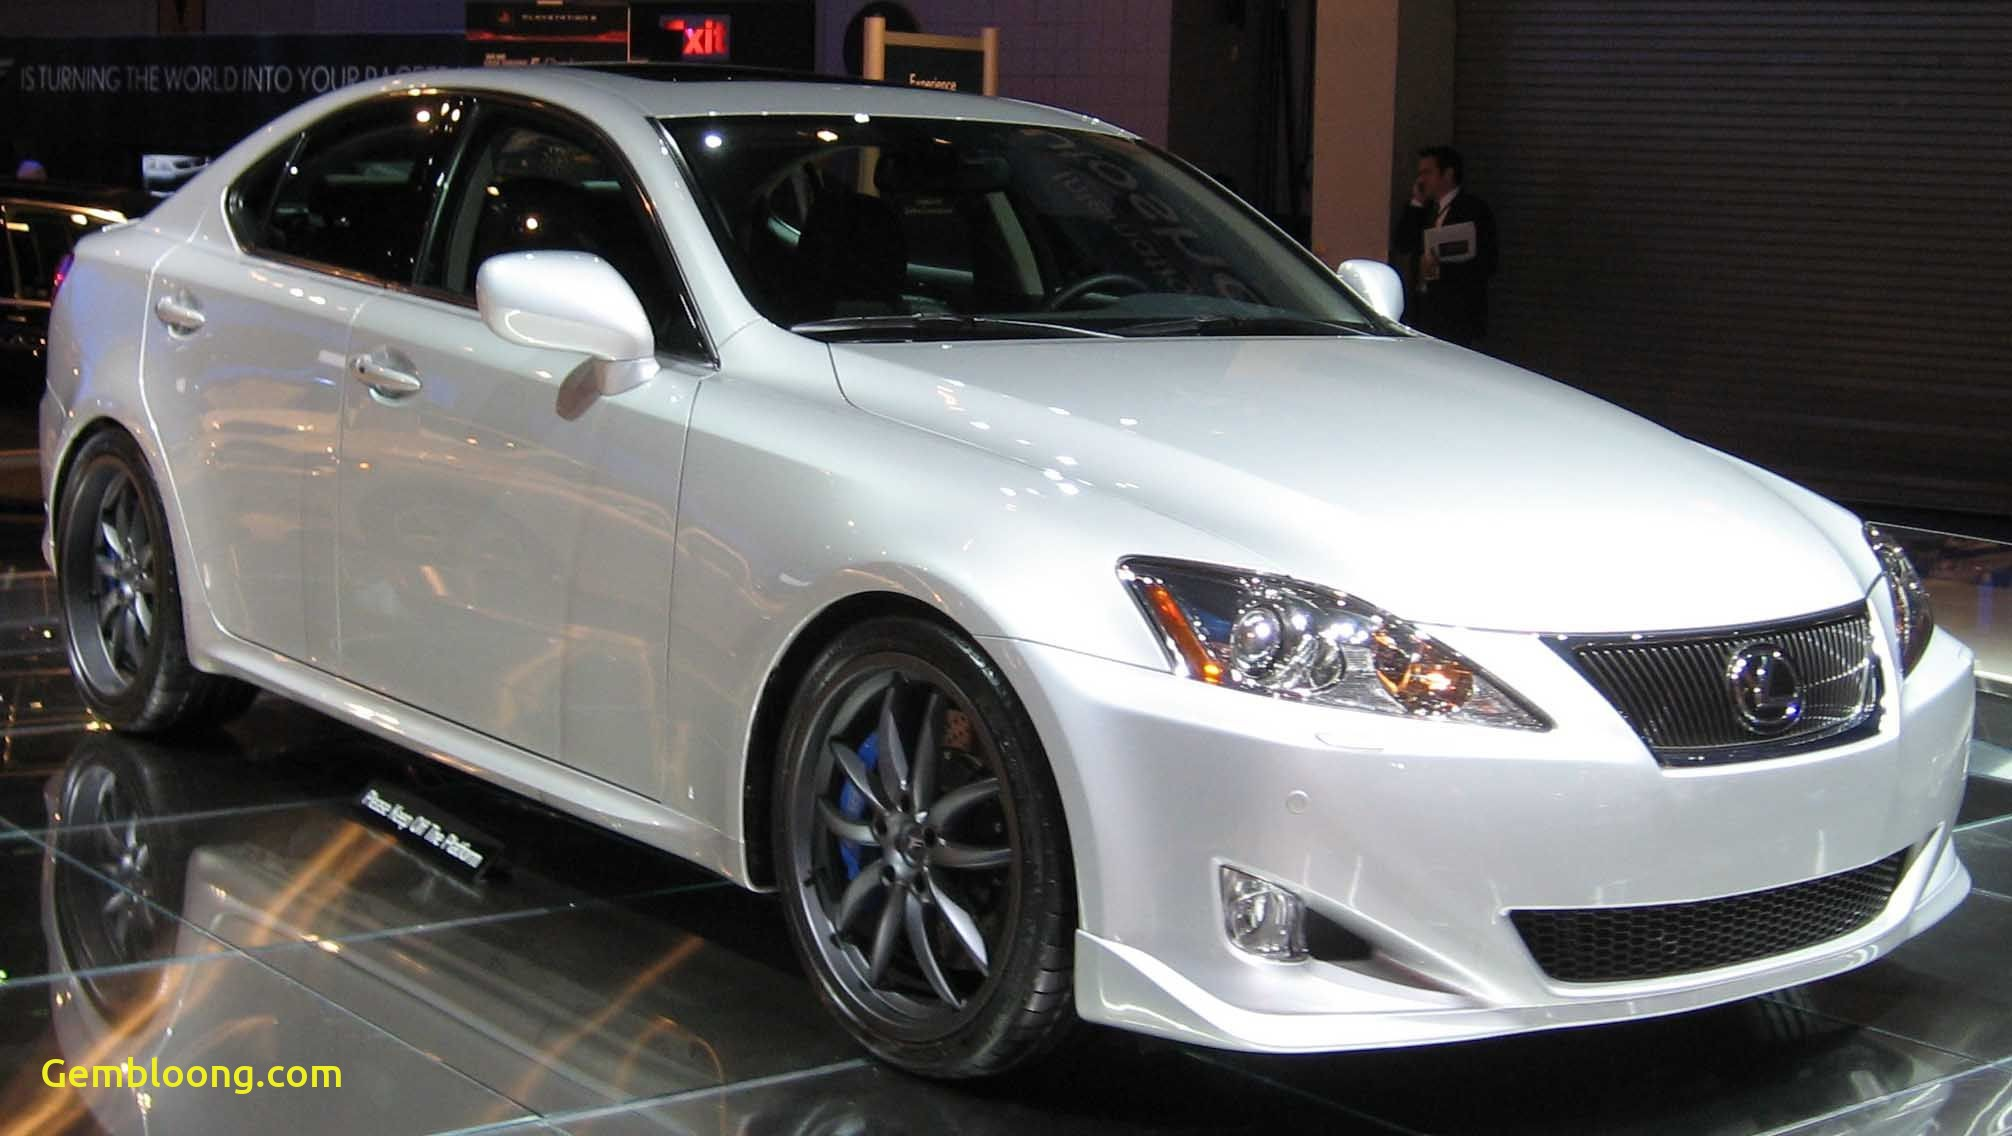 2015 Lexus Gs 350 Luxury Dream Car Lexus isf In Pearl White with Tinted Windows and